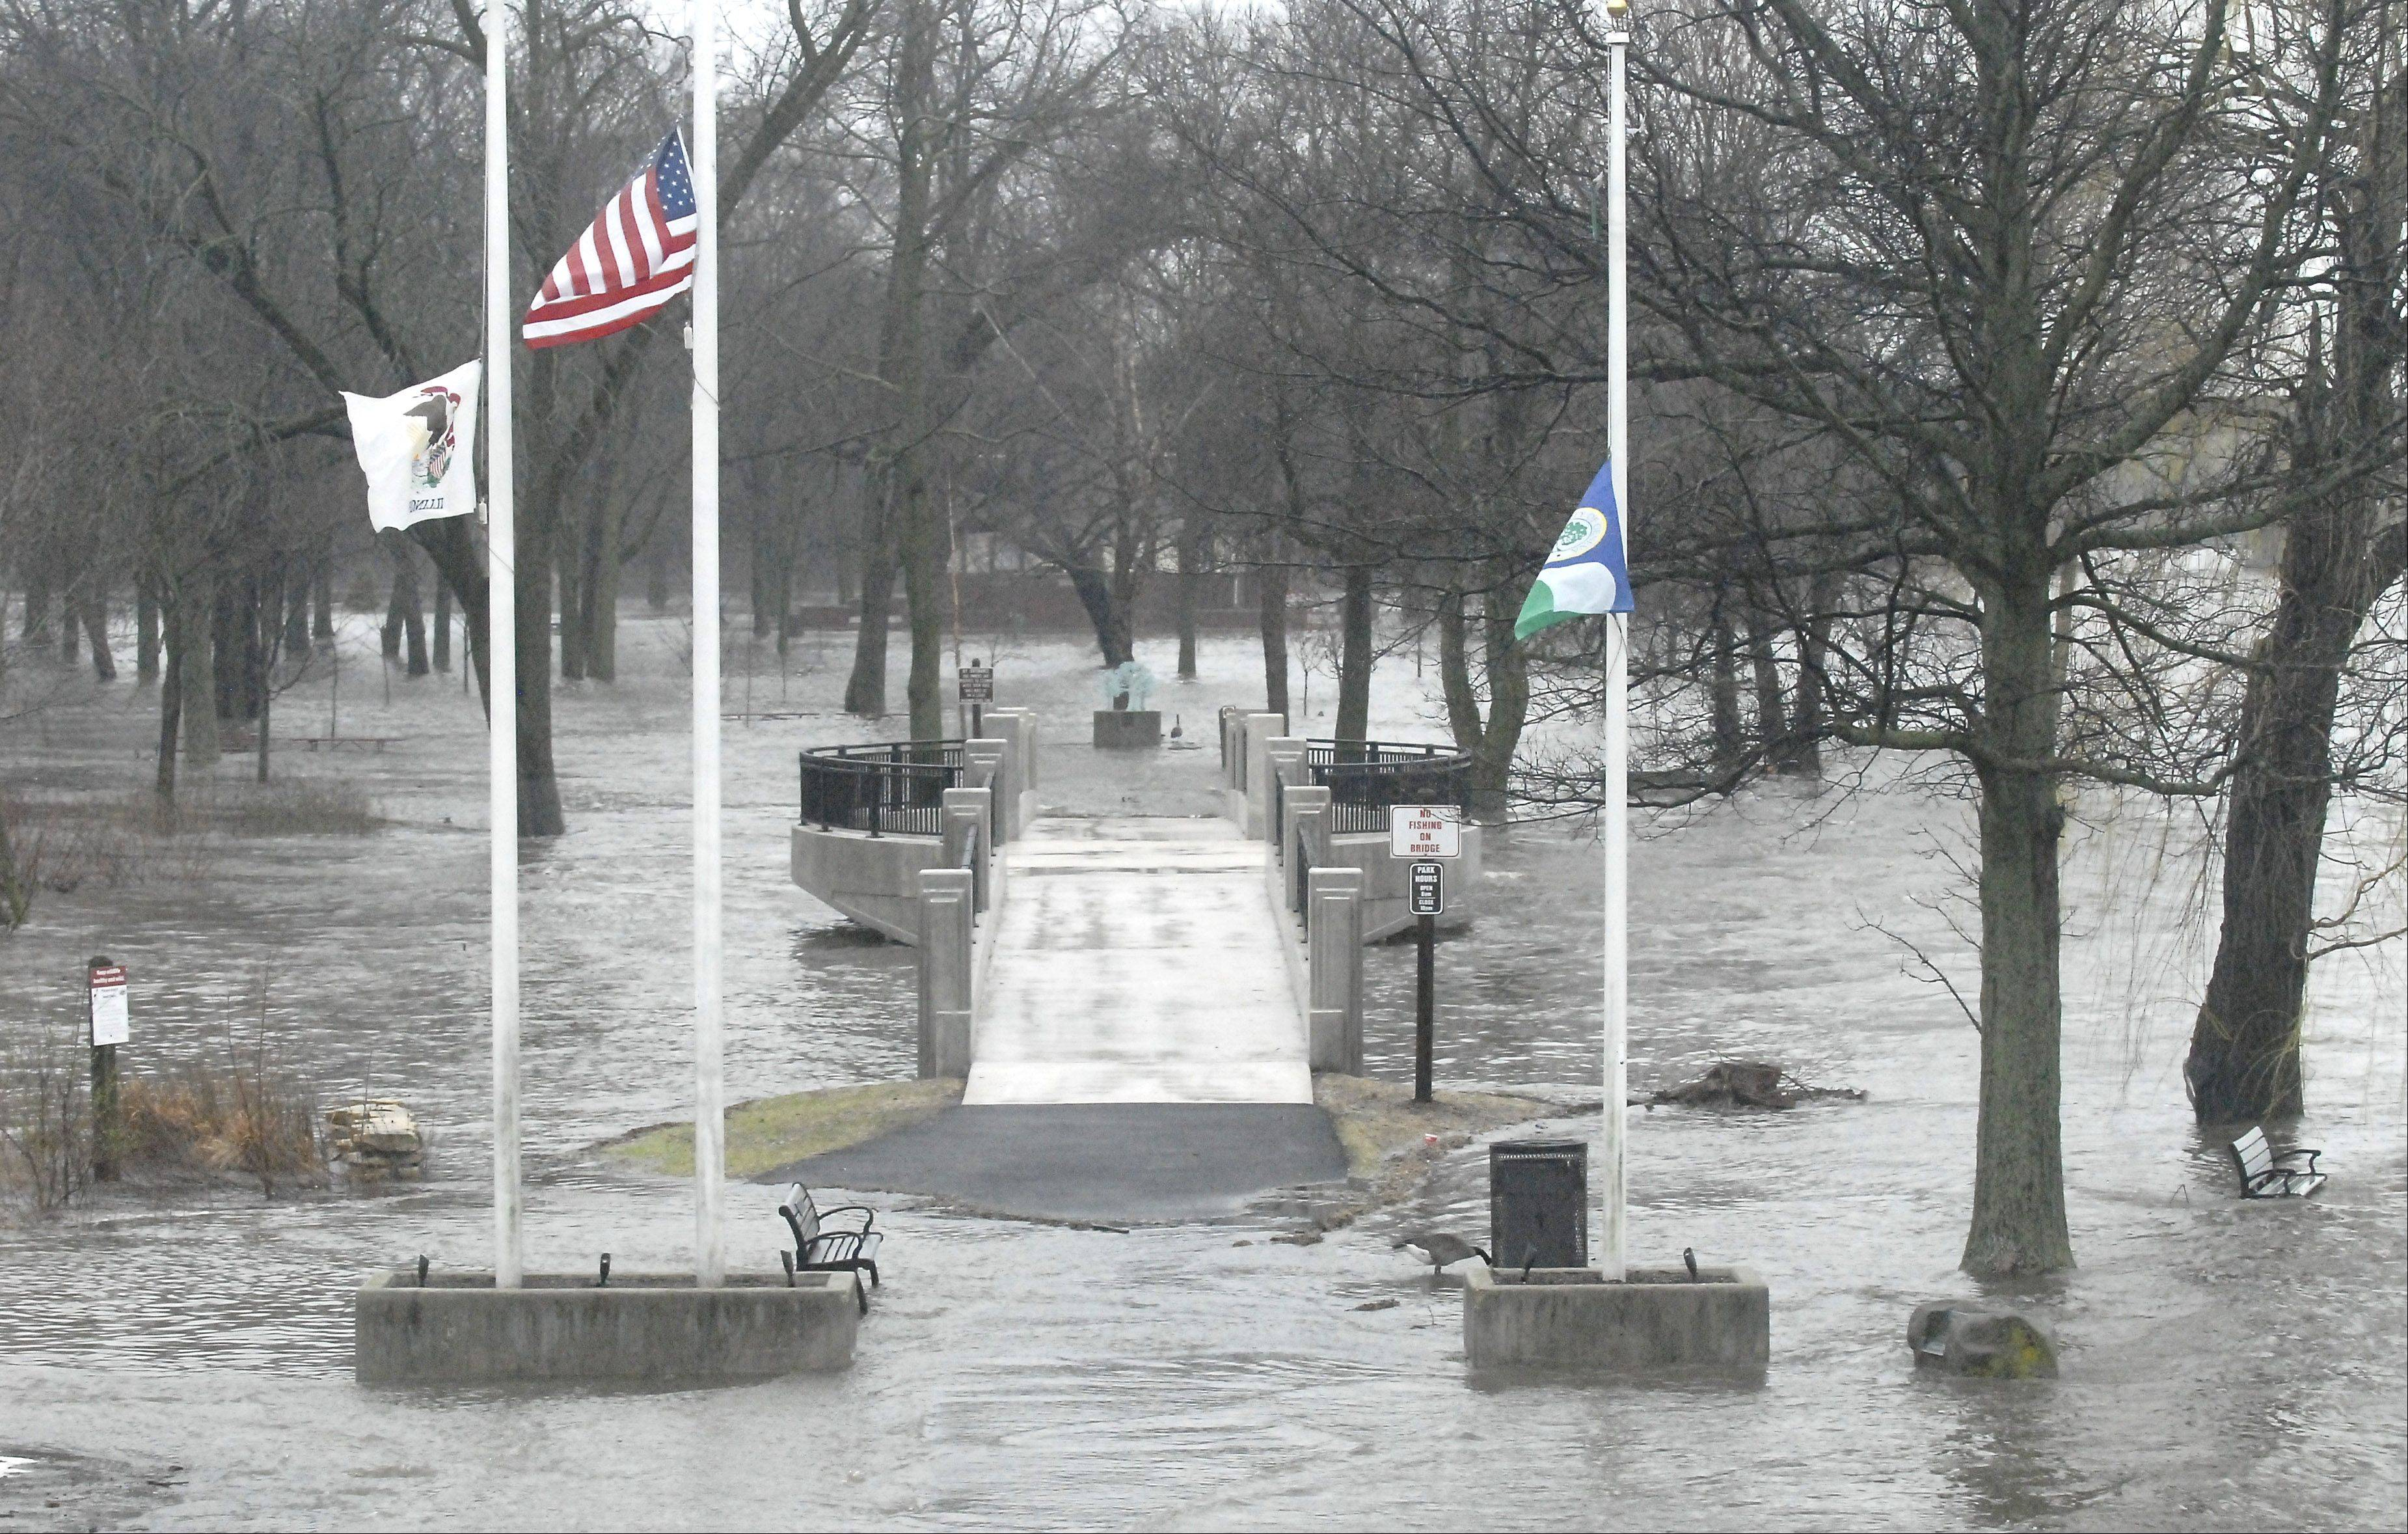 Island Park in Geneva was under water Thursday.